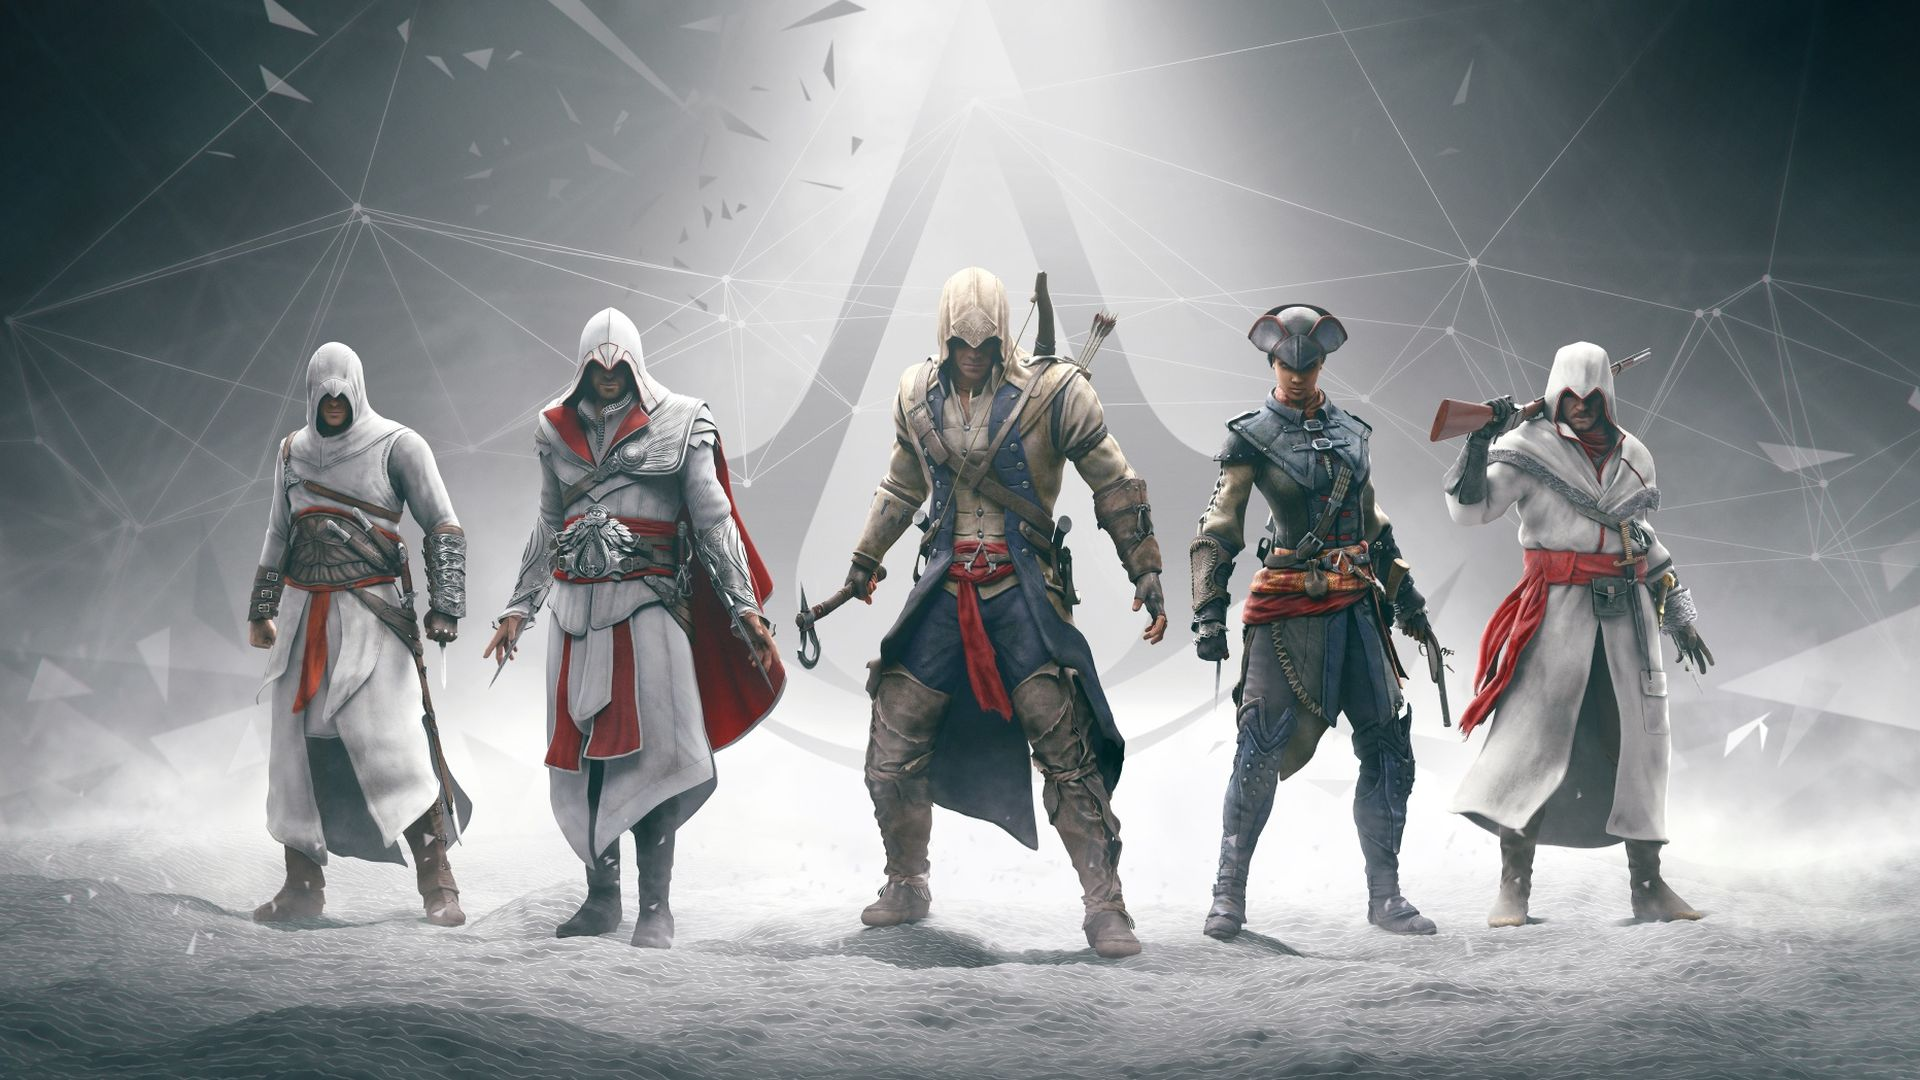 assassins_creed_character_art-wallpaper-1920x1080.jpg